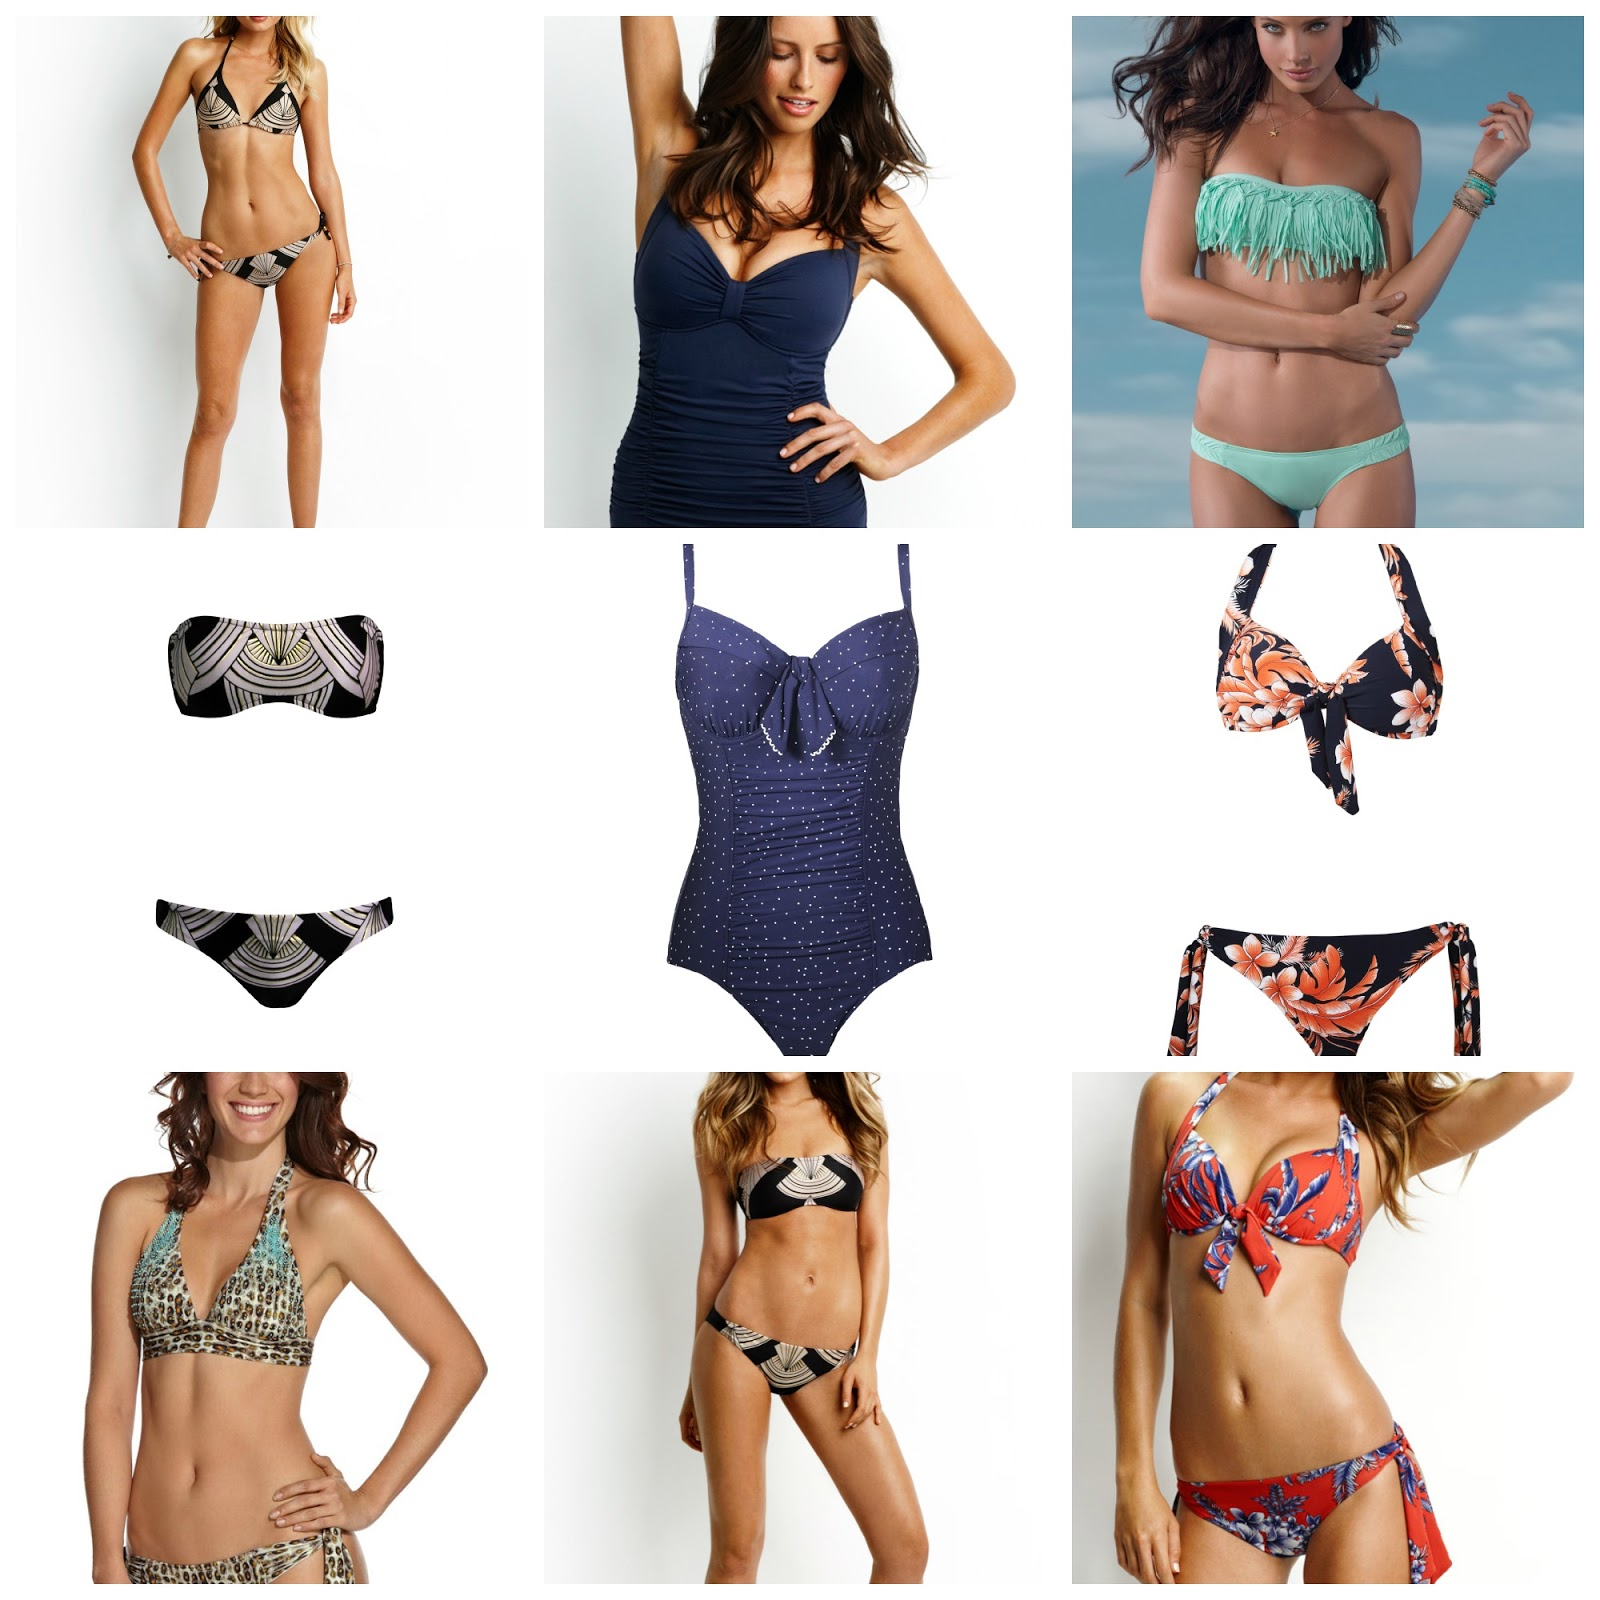 Choosing the right swimwear for your body shape